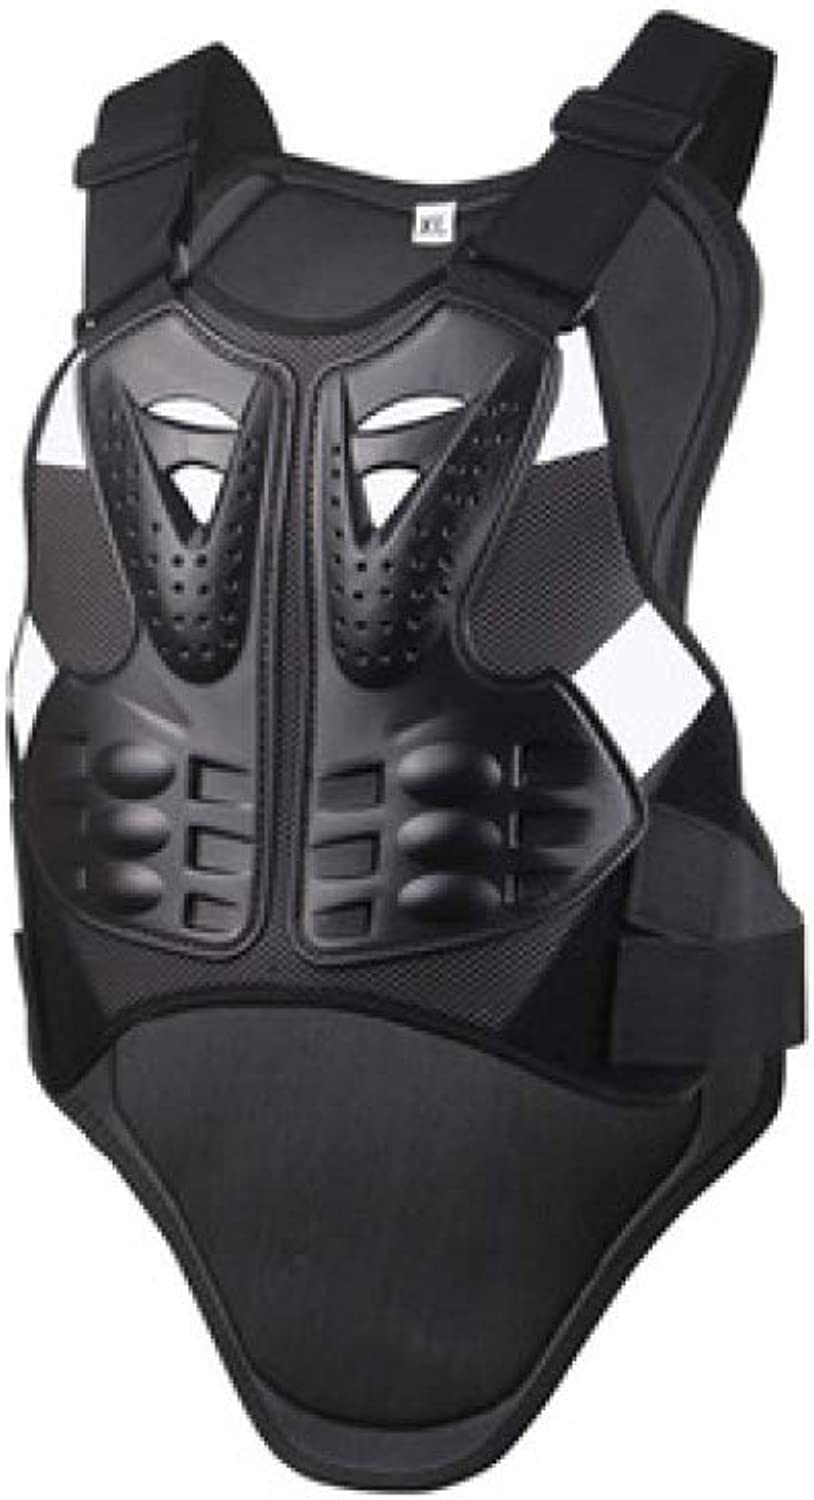 BUGL Roller Skating Motorcycle Back, Predect The Spine Combination Sports Predective Gear Armor Racing Vest